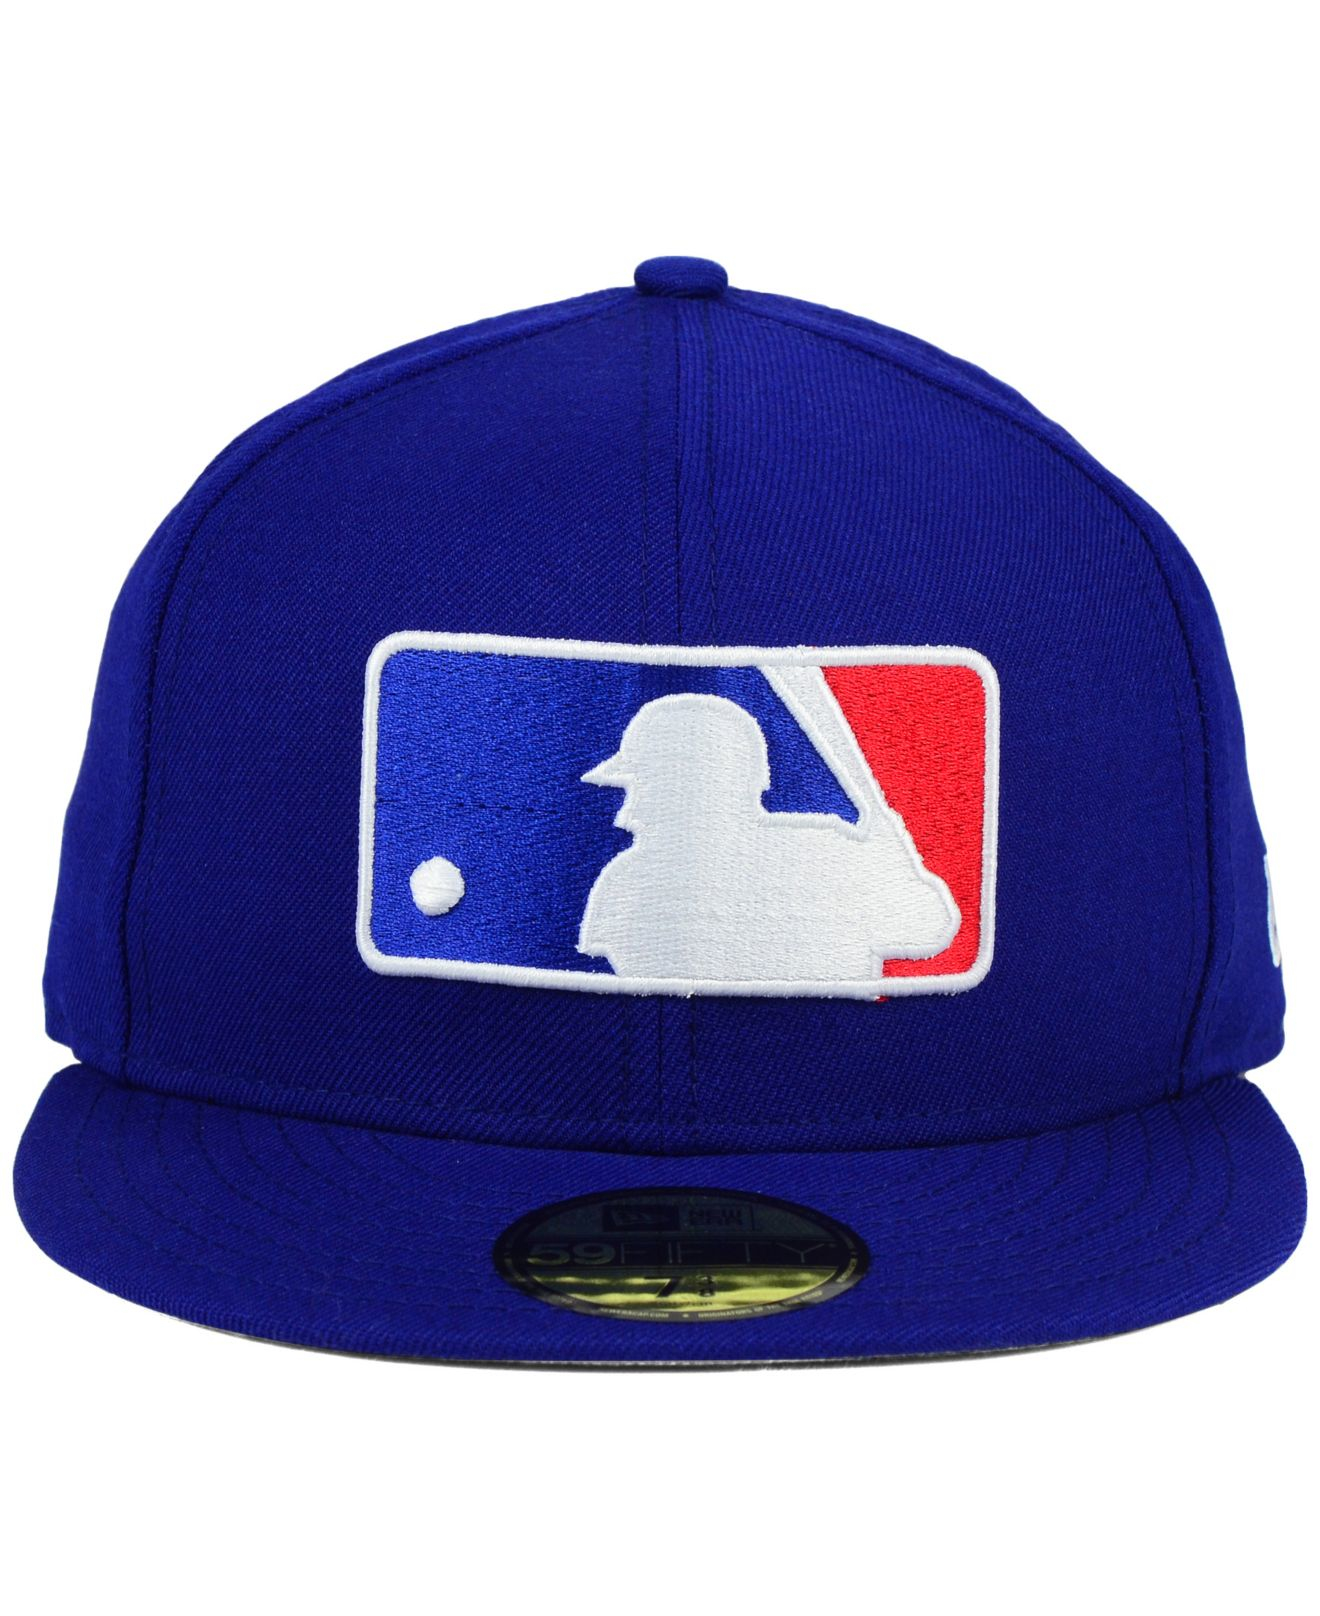 Lyst - KTZ Chicago Cubs Team Logo Man 59fifty Cap in Blue for Men 53c8ccd0ce4